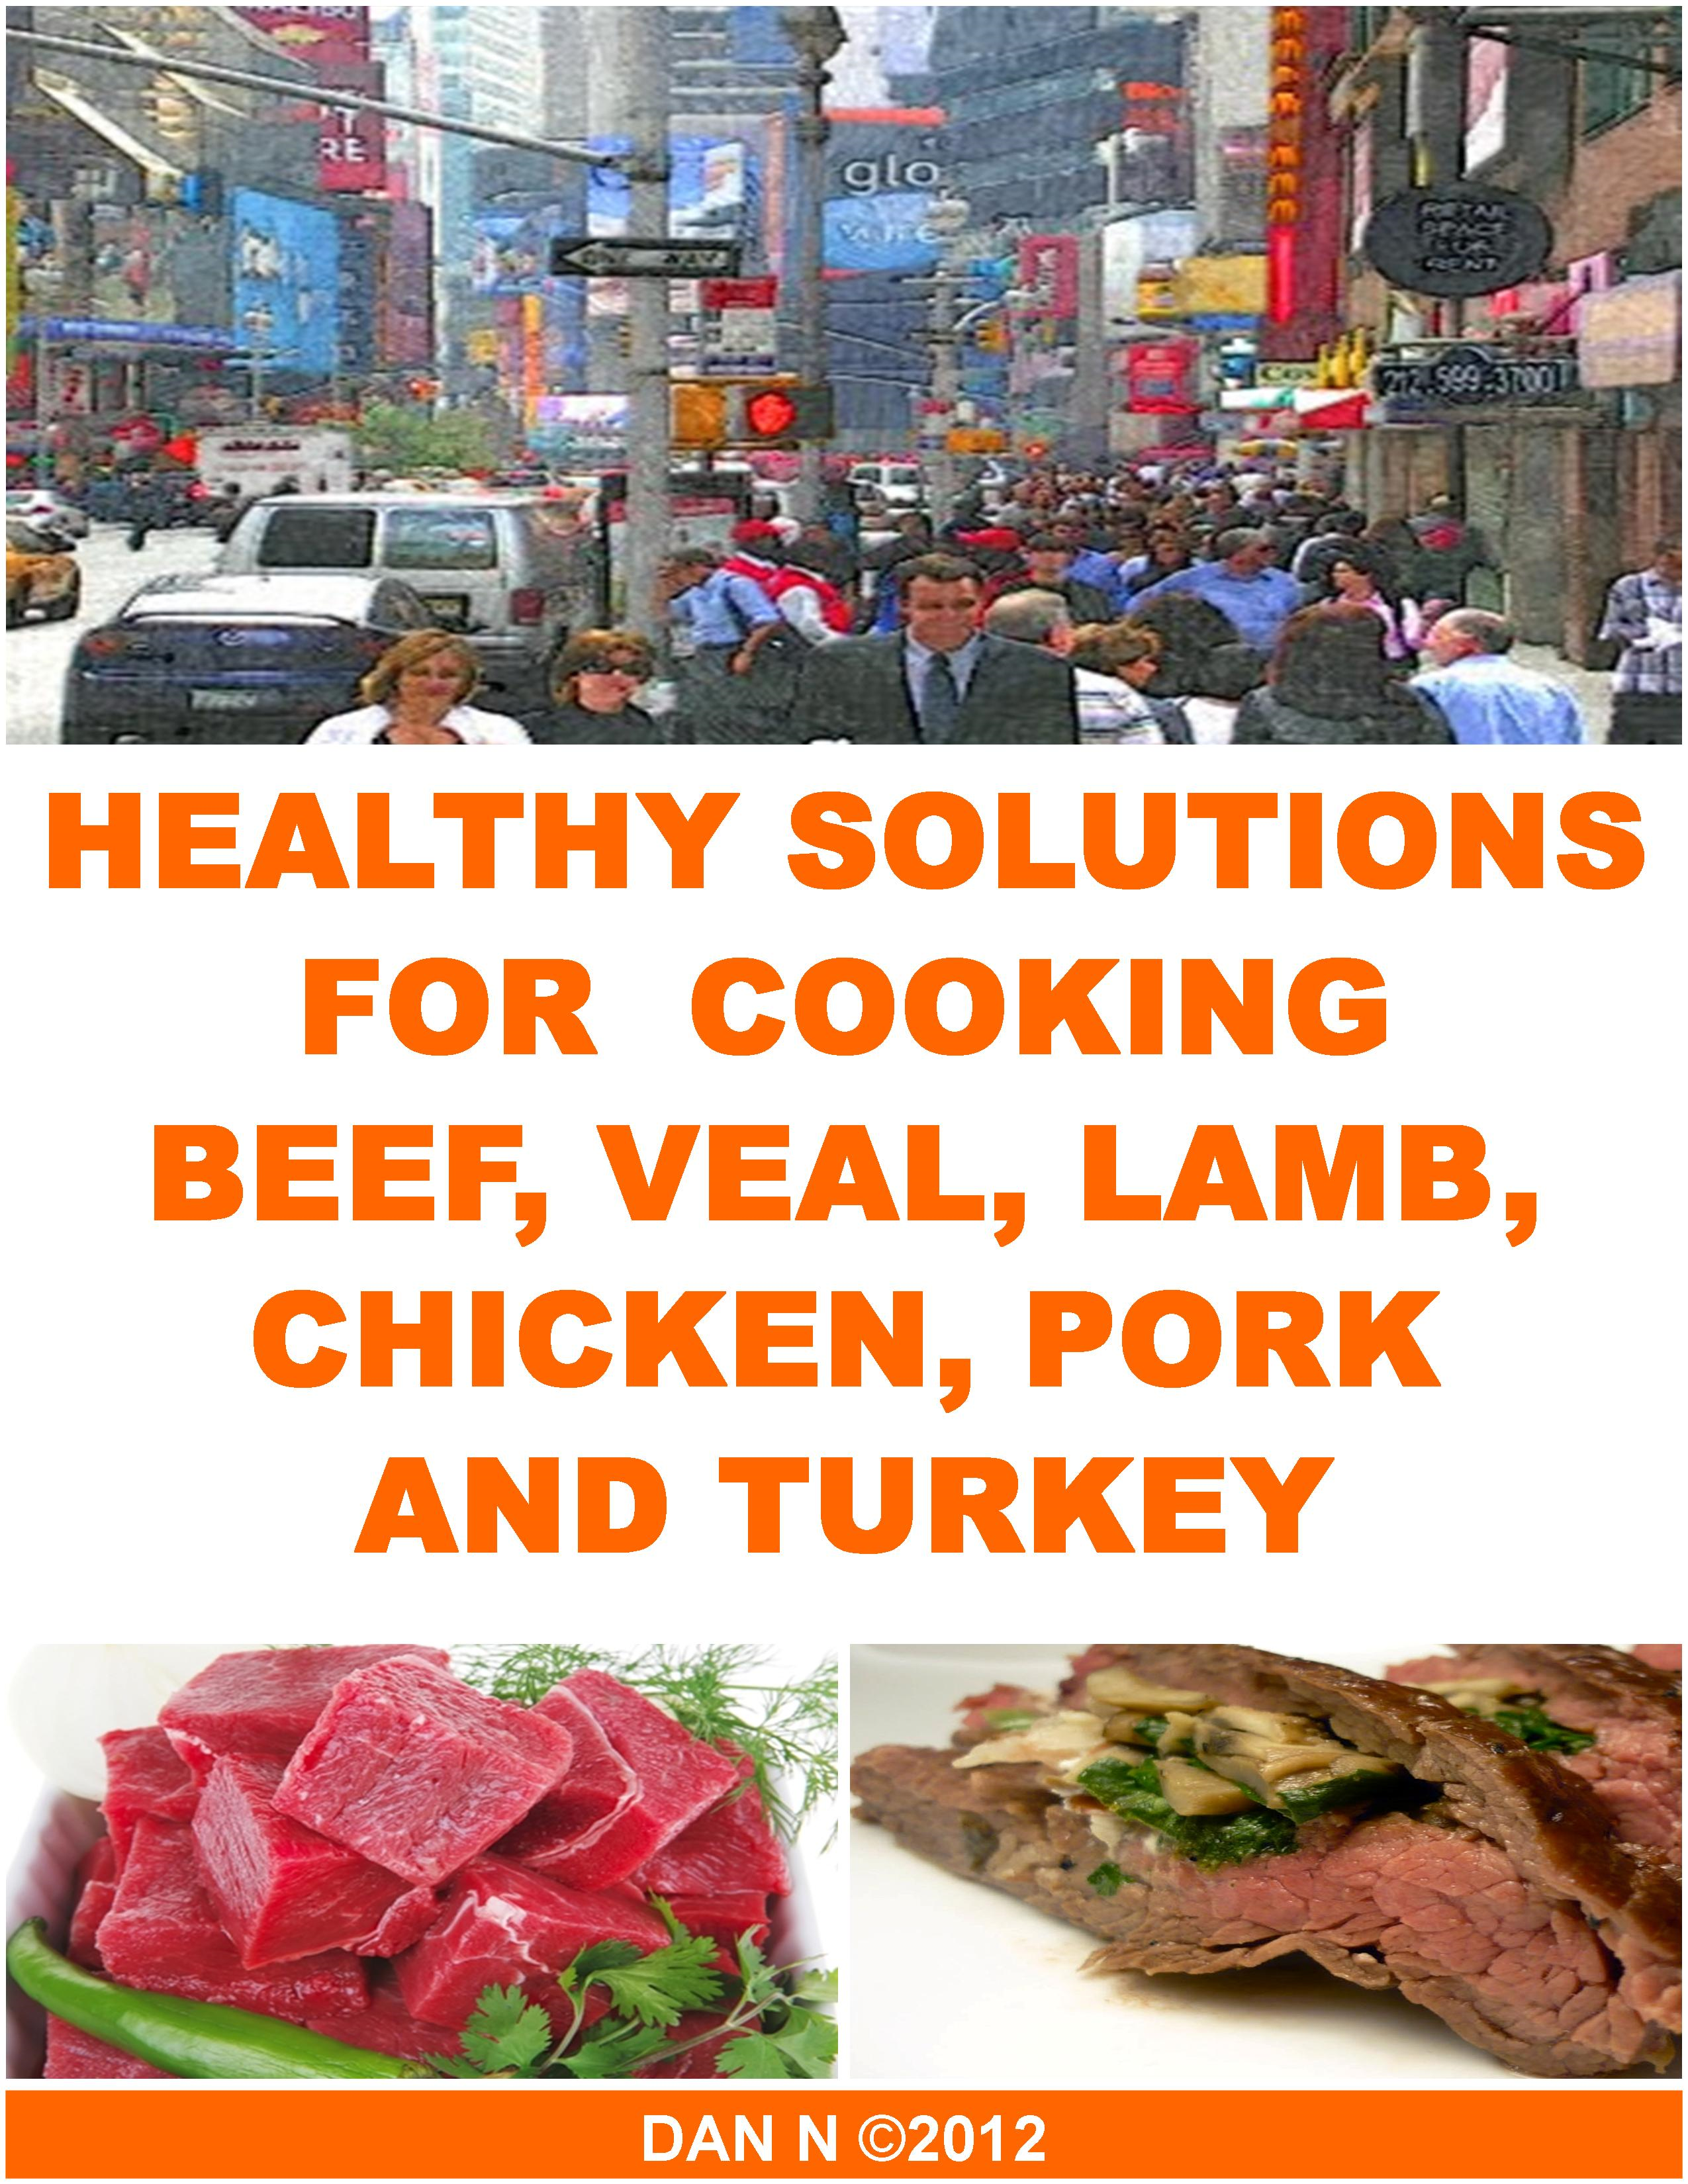 Healthy Solutions for Cooking Beef, Veal, Lamb, Chicken, Pork and Turkey